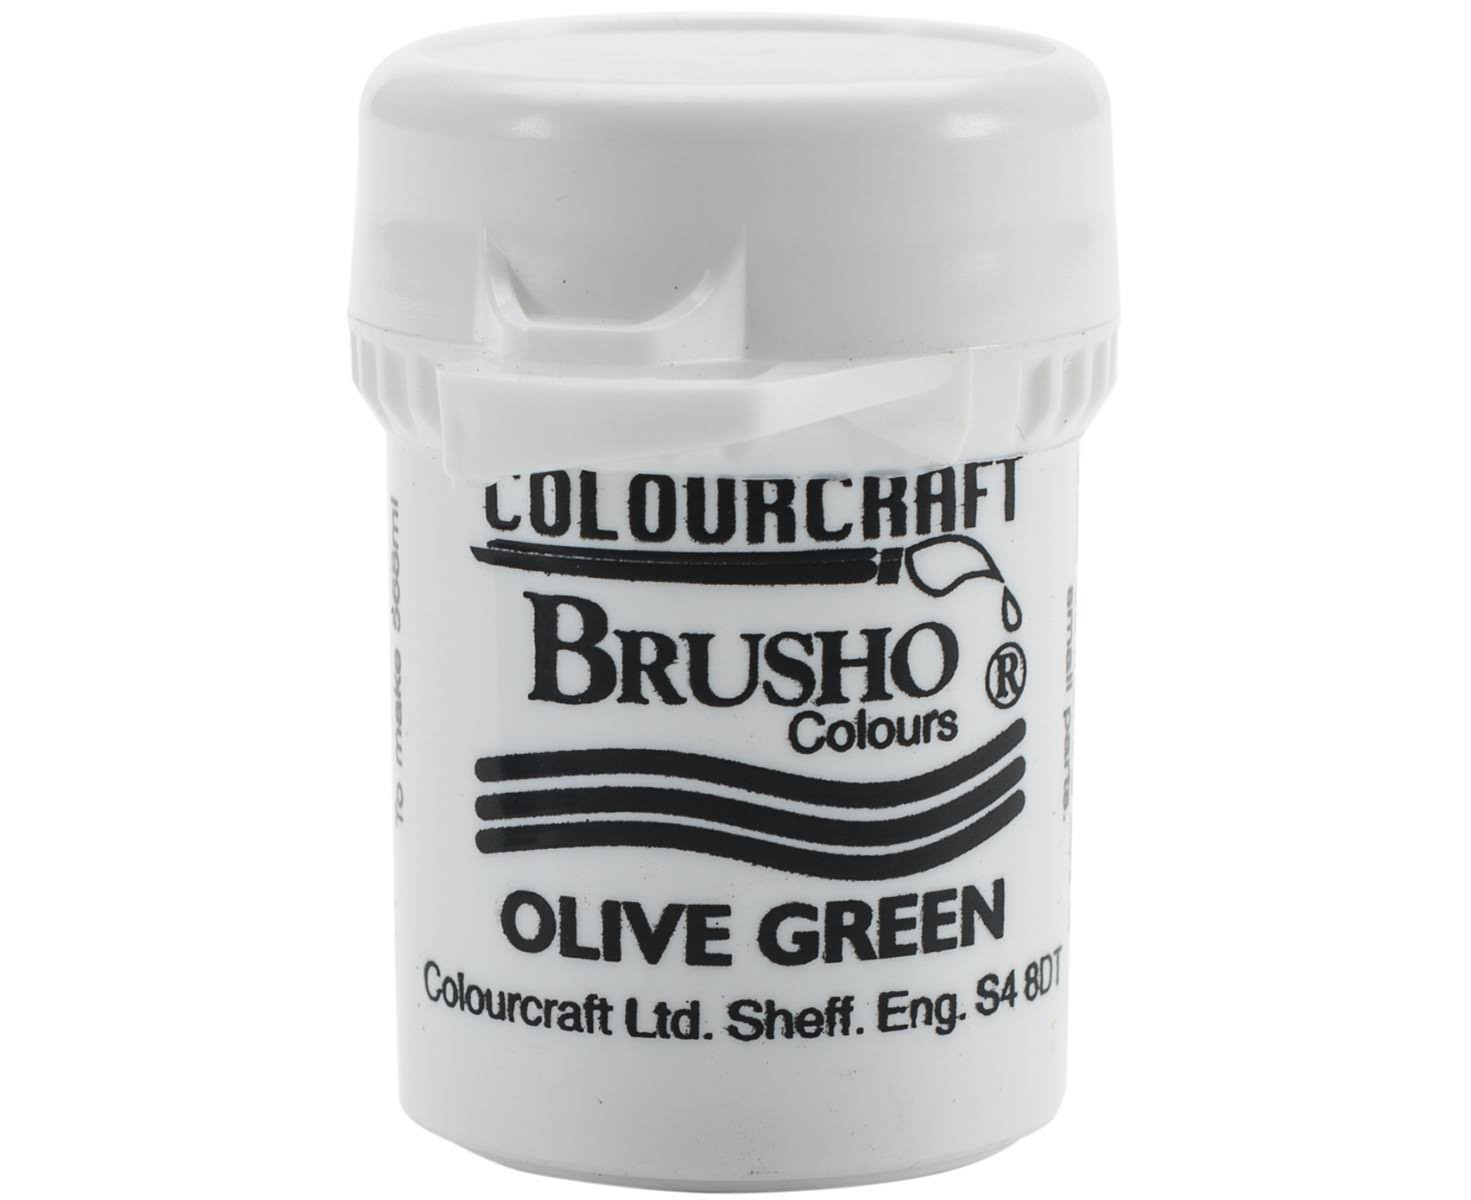 Colourcraft Brusho Crystal Colour - Olive Green, 15g